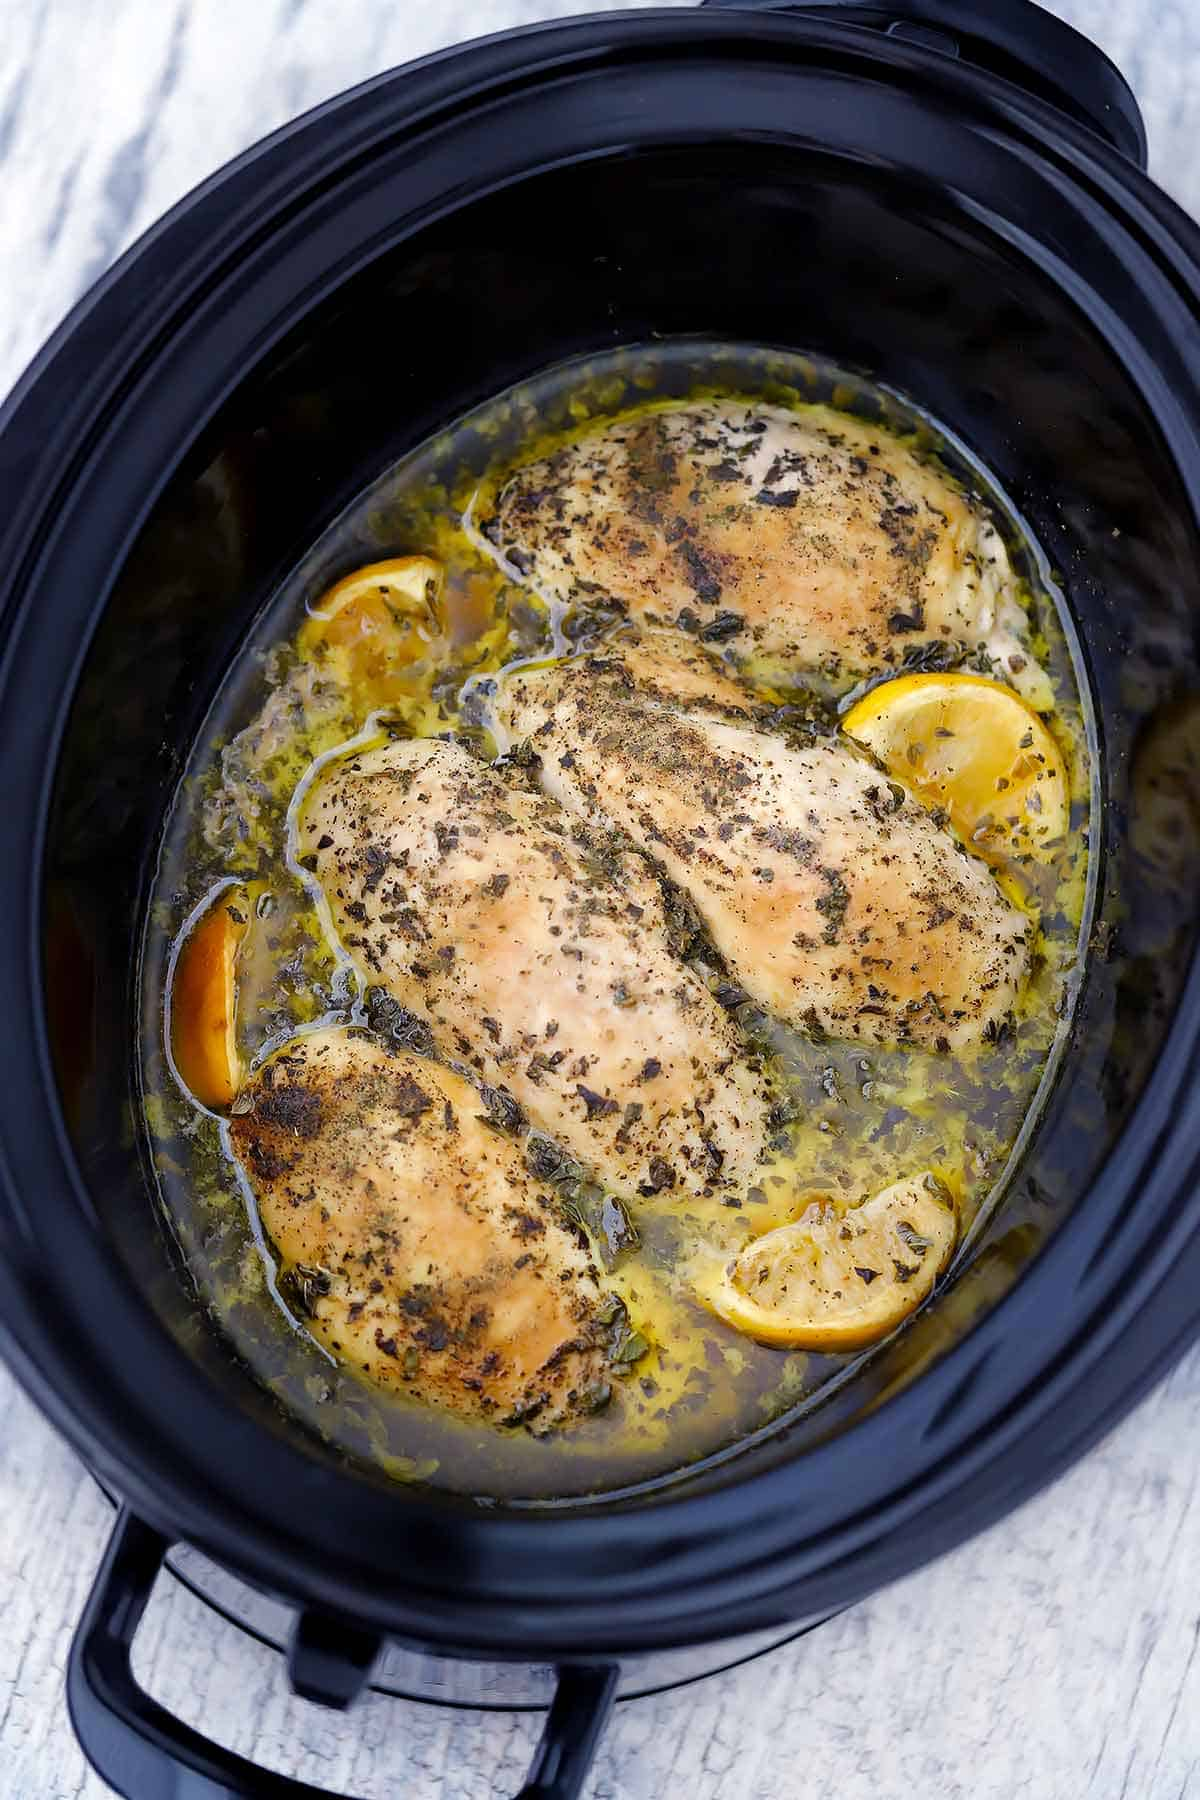 Cooked chicken breasts with oregano and lemon in a slow cooker.